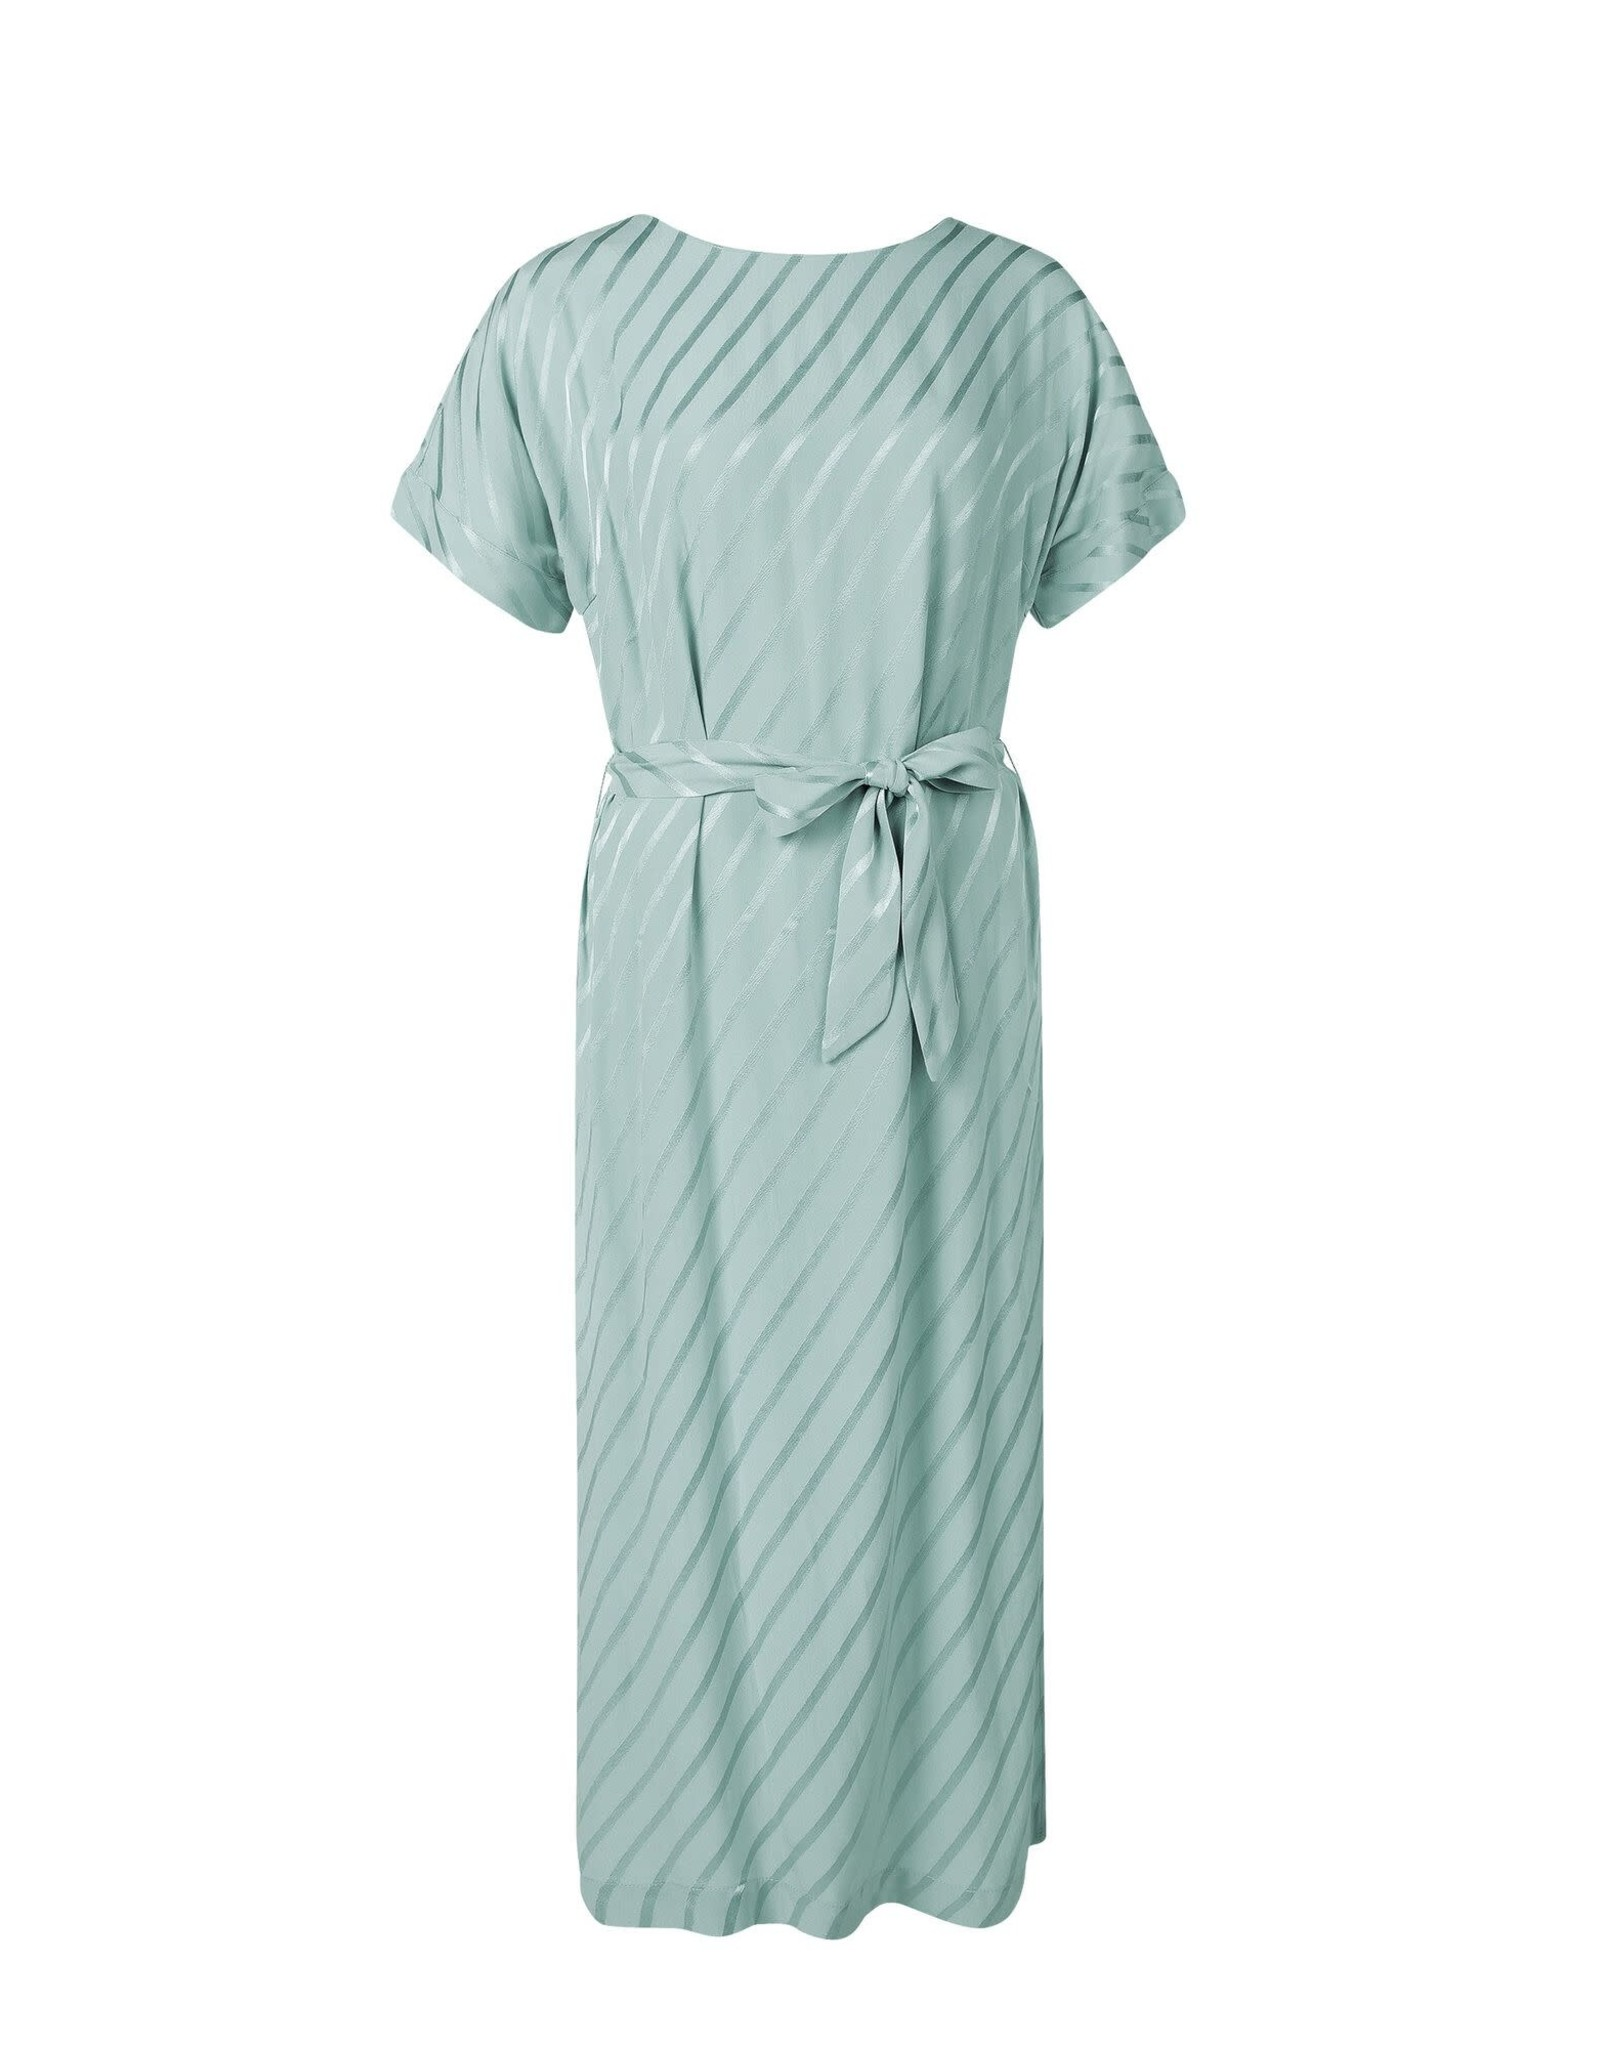 CKS Dress Lavendula mint